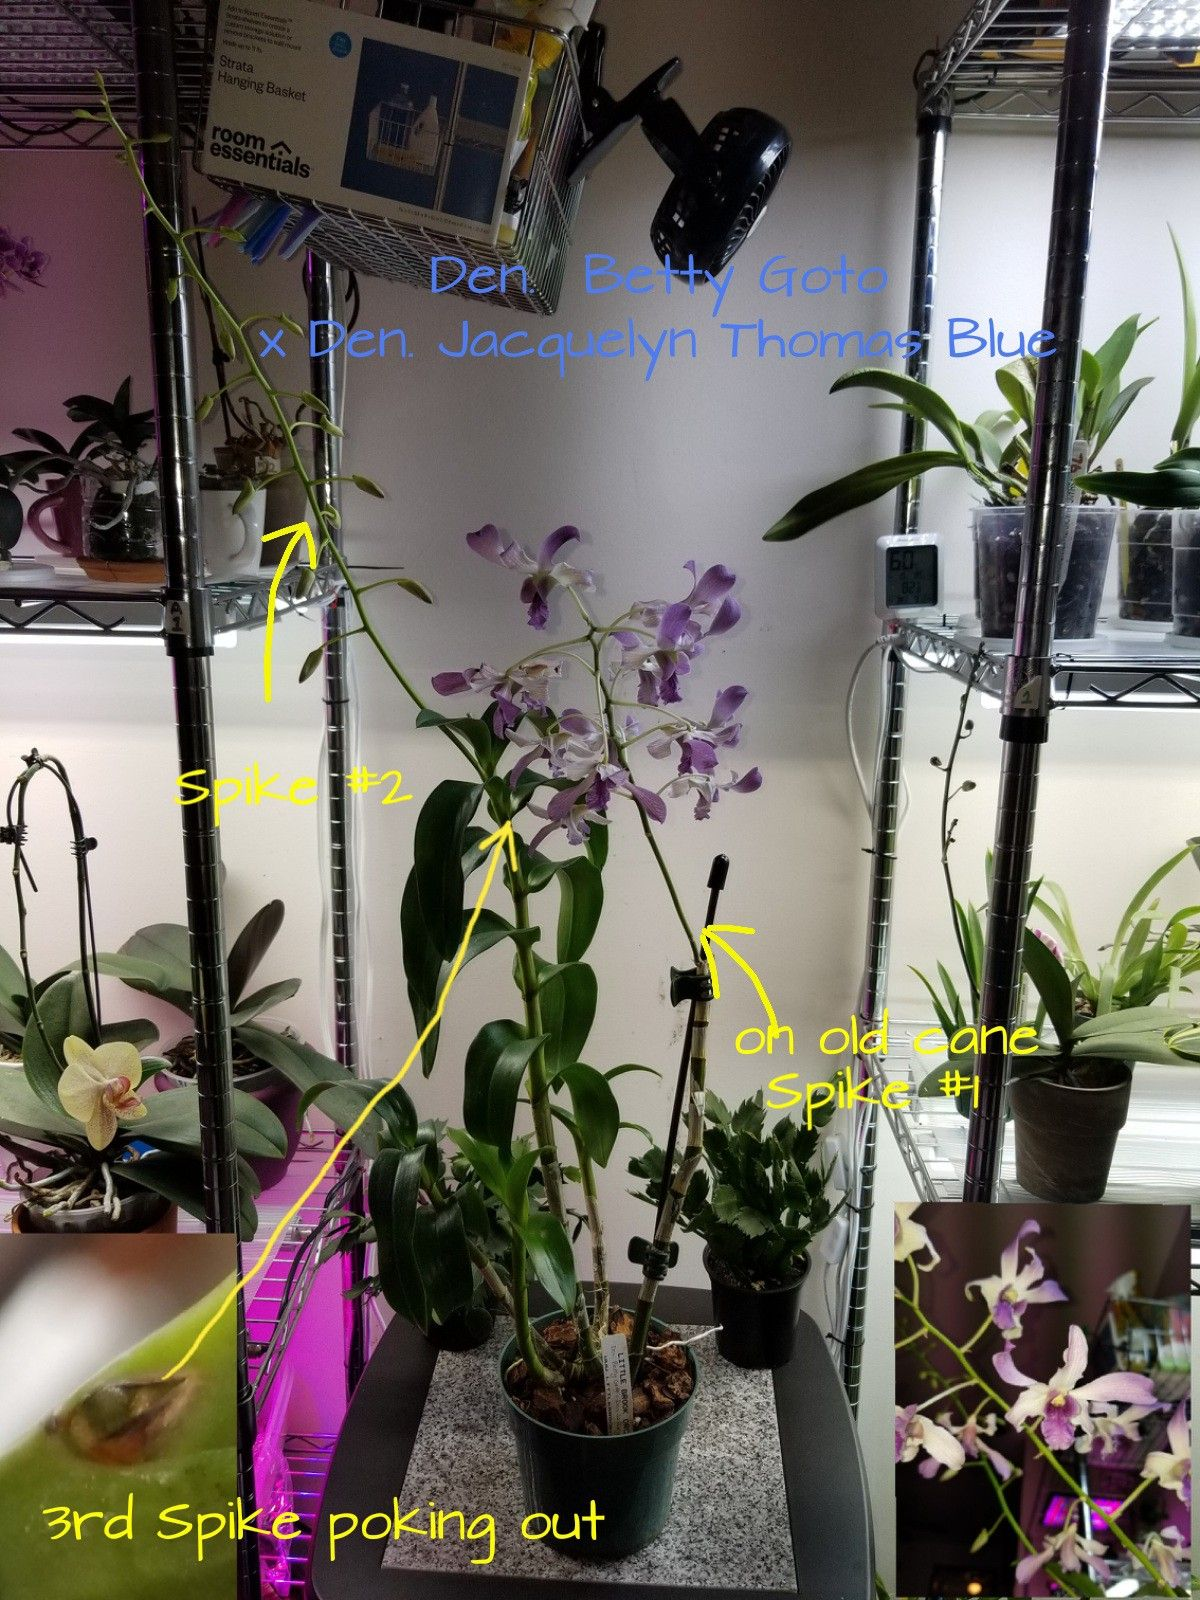 I Found A Nice Surprise On My Dendrobium Hybrid From Little Brook Orchids In Lancaster Pa Upon Inspecting The Den Betty Goto Types Of Orchids Orchids Bloom